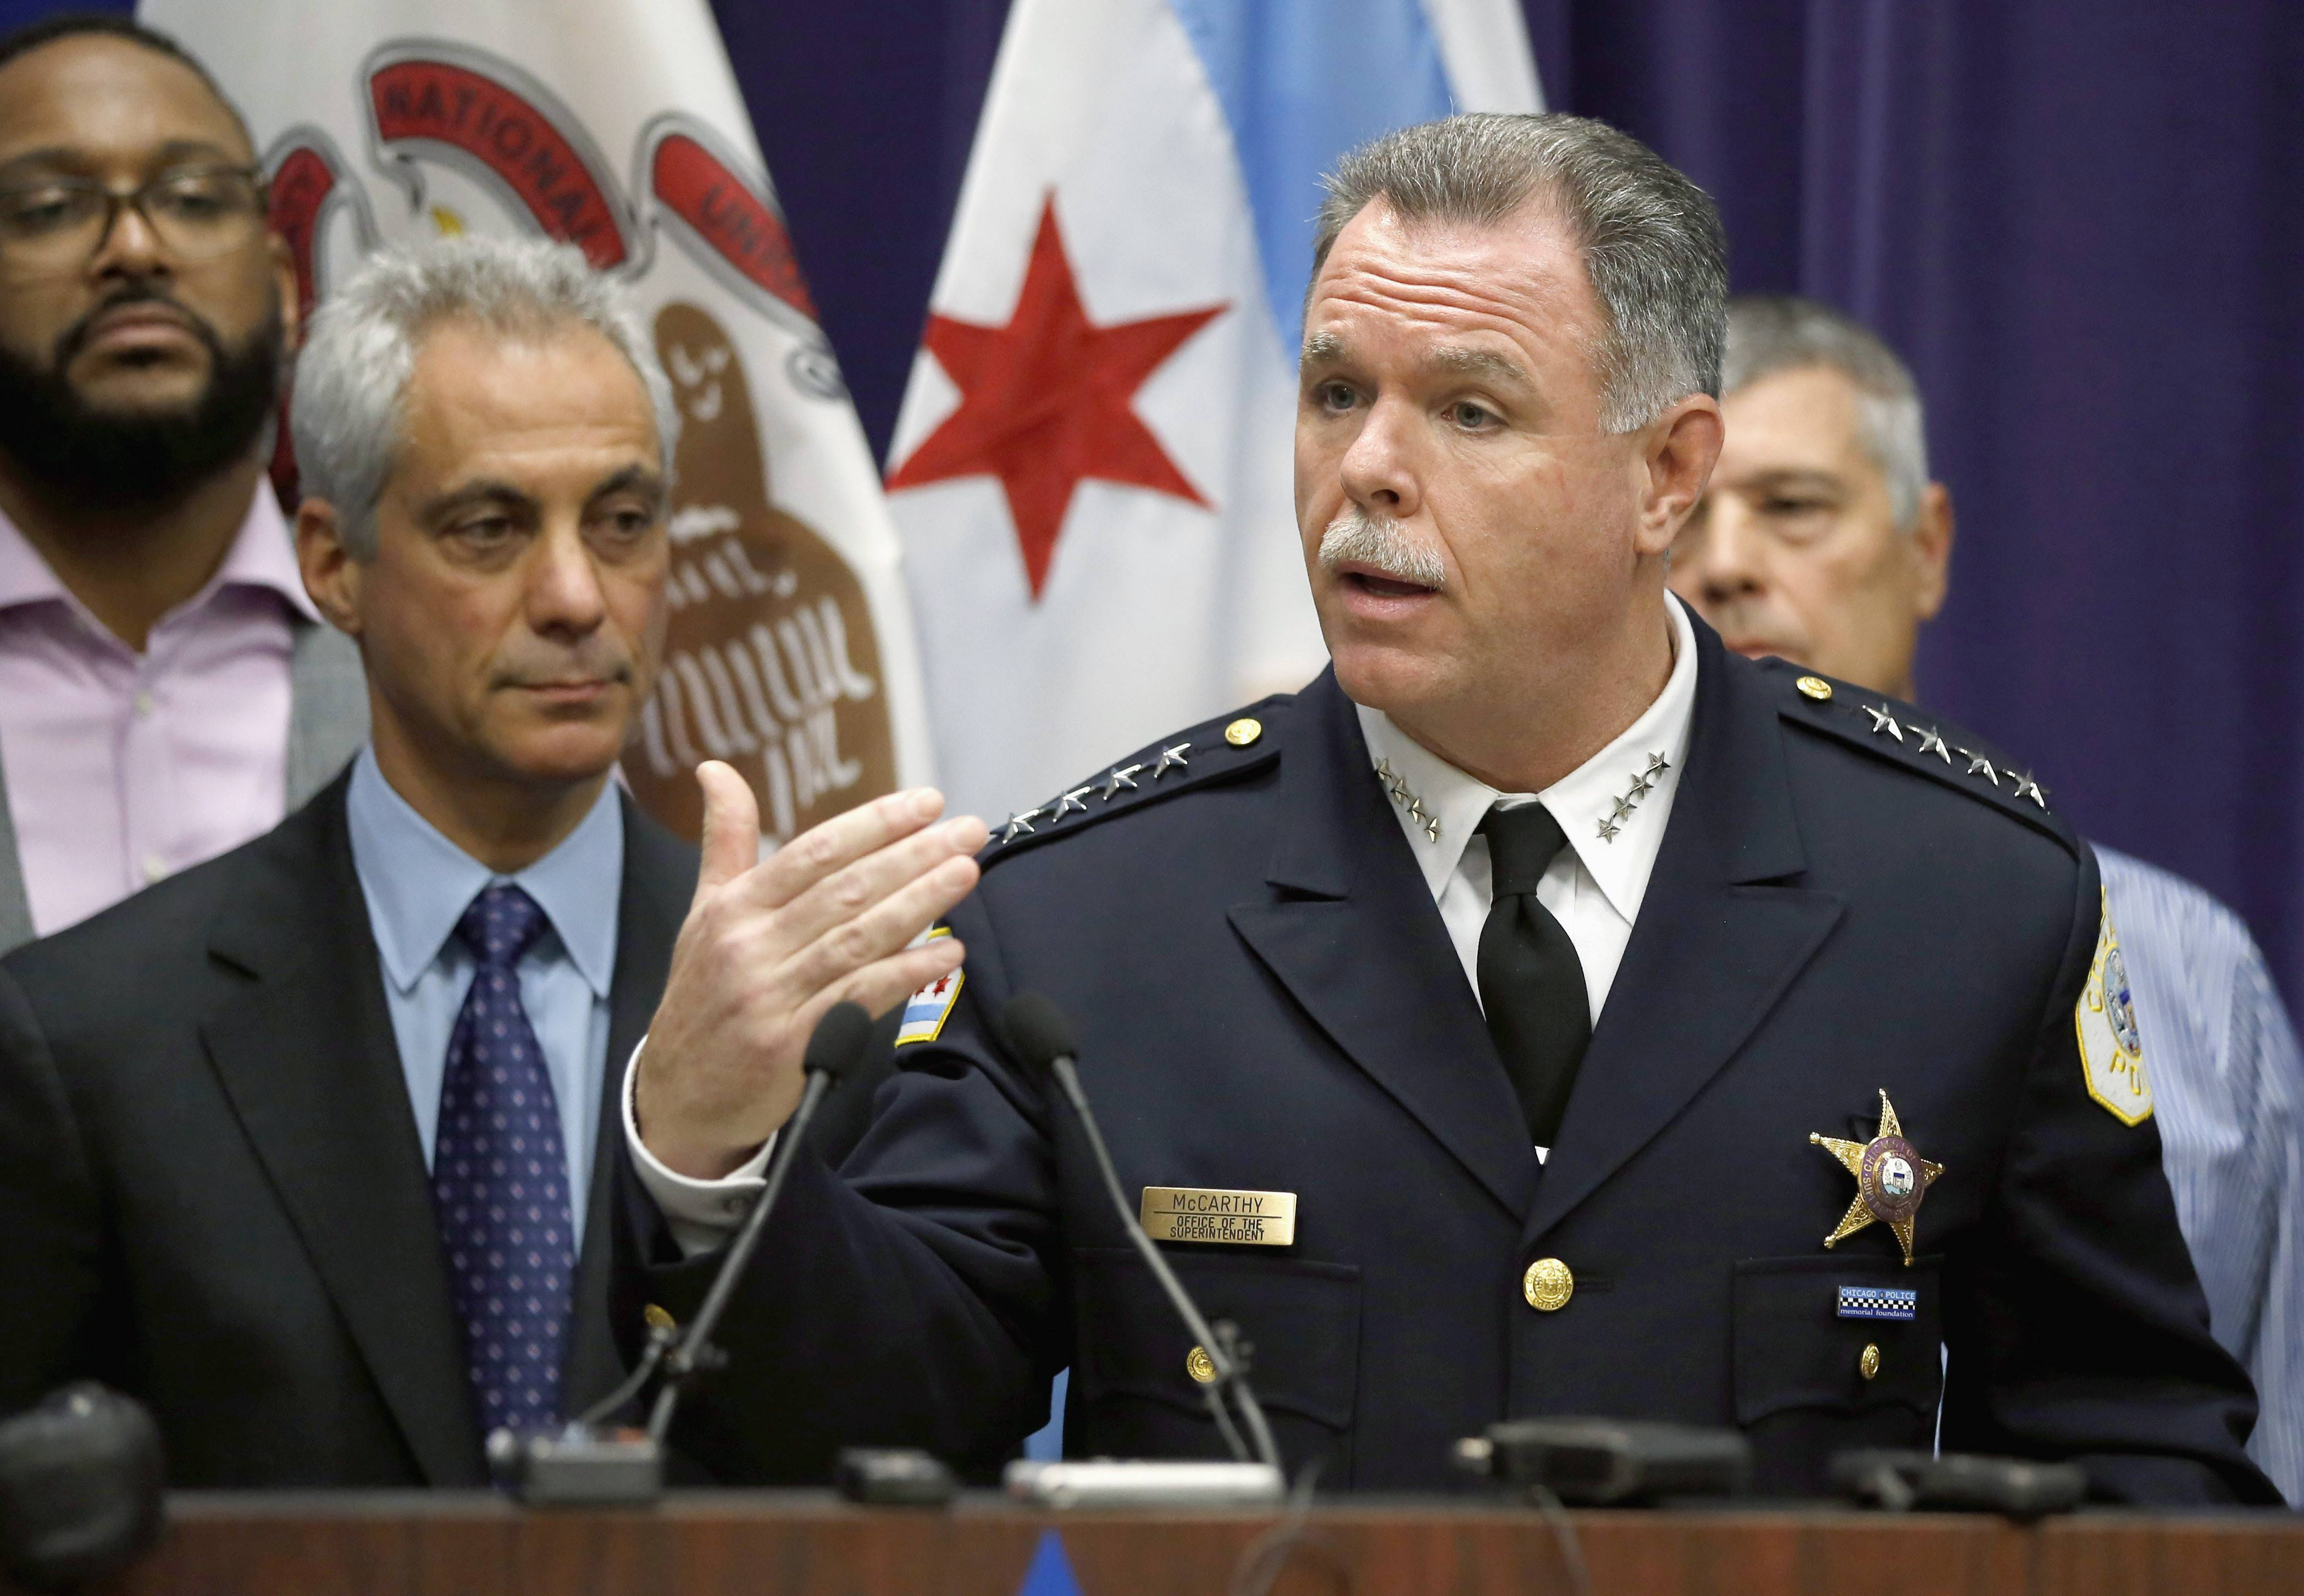 Mayor Rahm Emanuel announced Tuesday, Dec. 1, 2015, that Chicago Police Superintendent Garry McCarthy has been fired after a public outcry over the handling of the Laquan McDonald case.